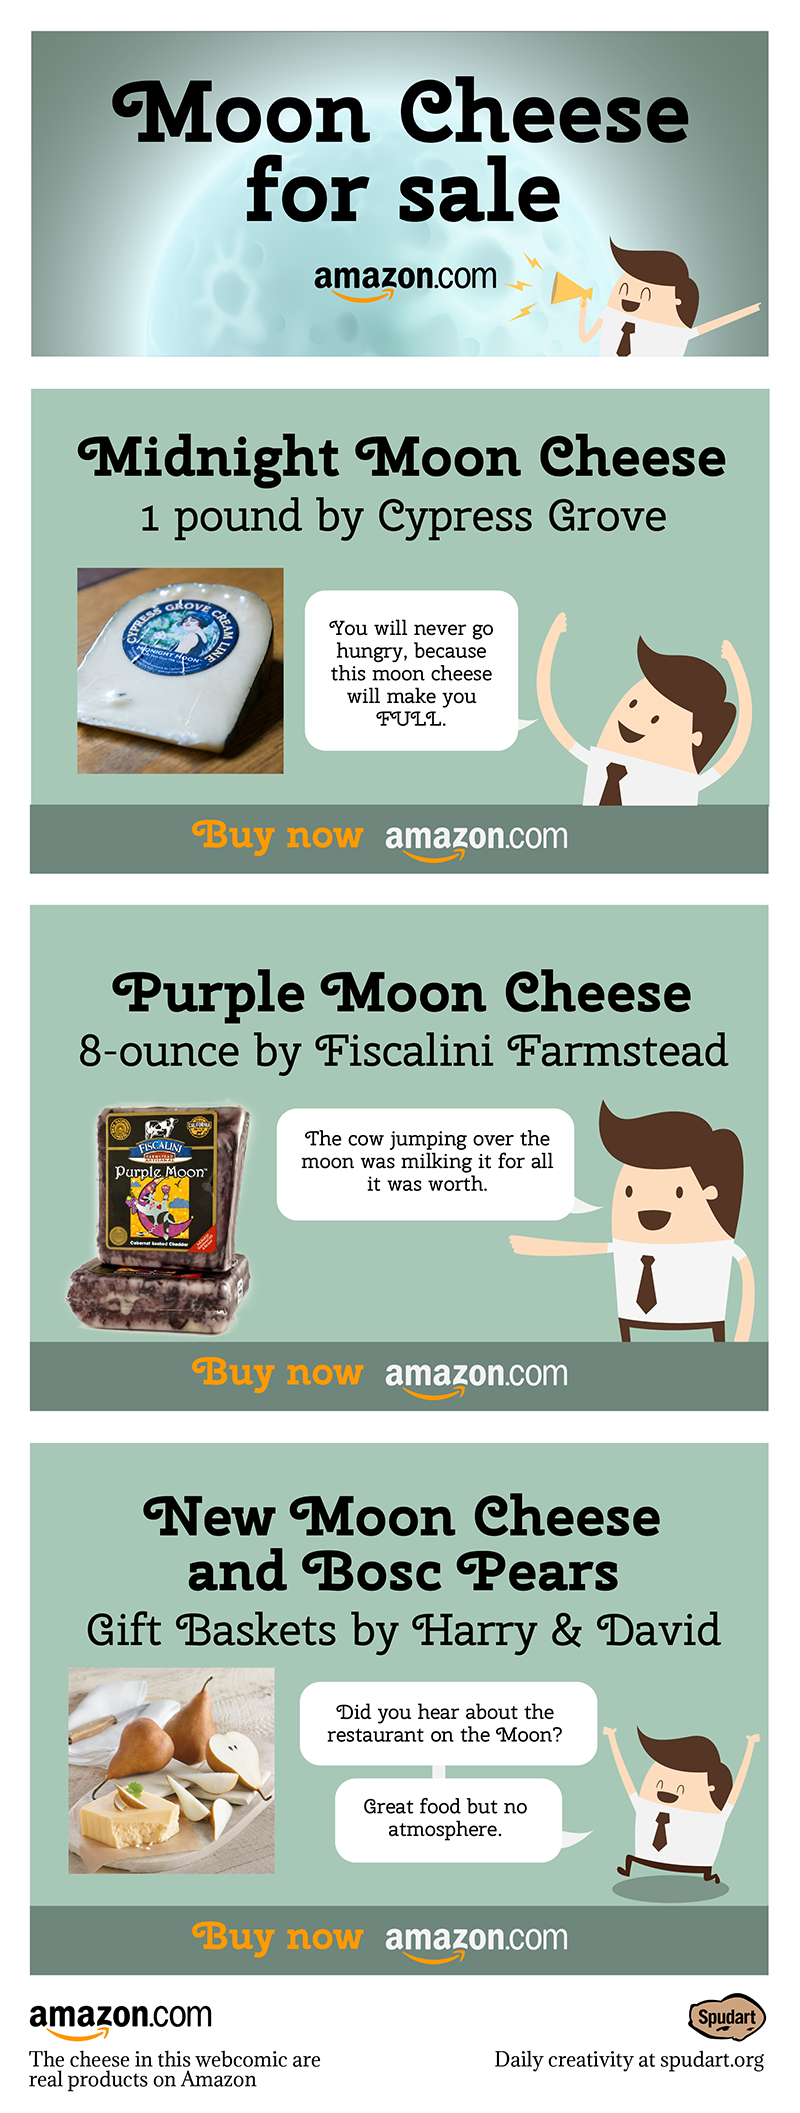 Three different moon cheese gifts for outer space and food lovers